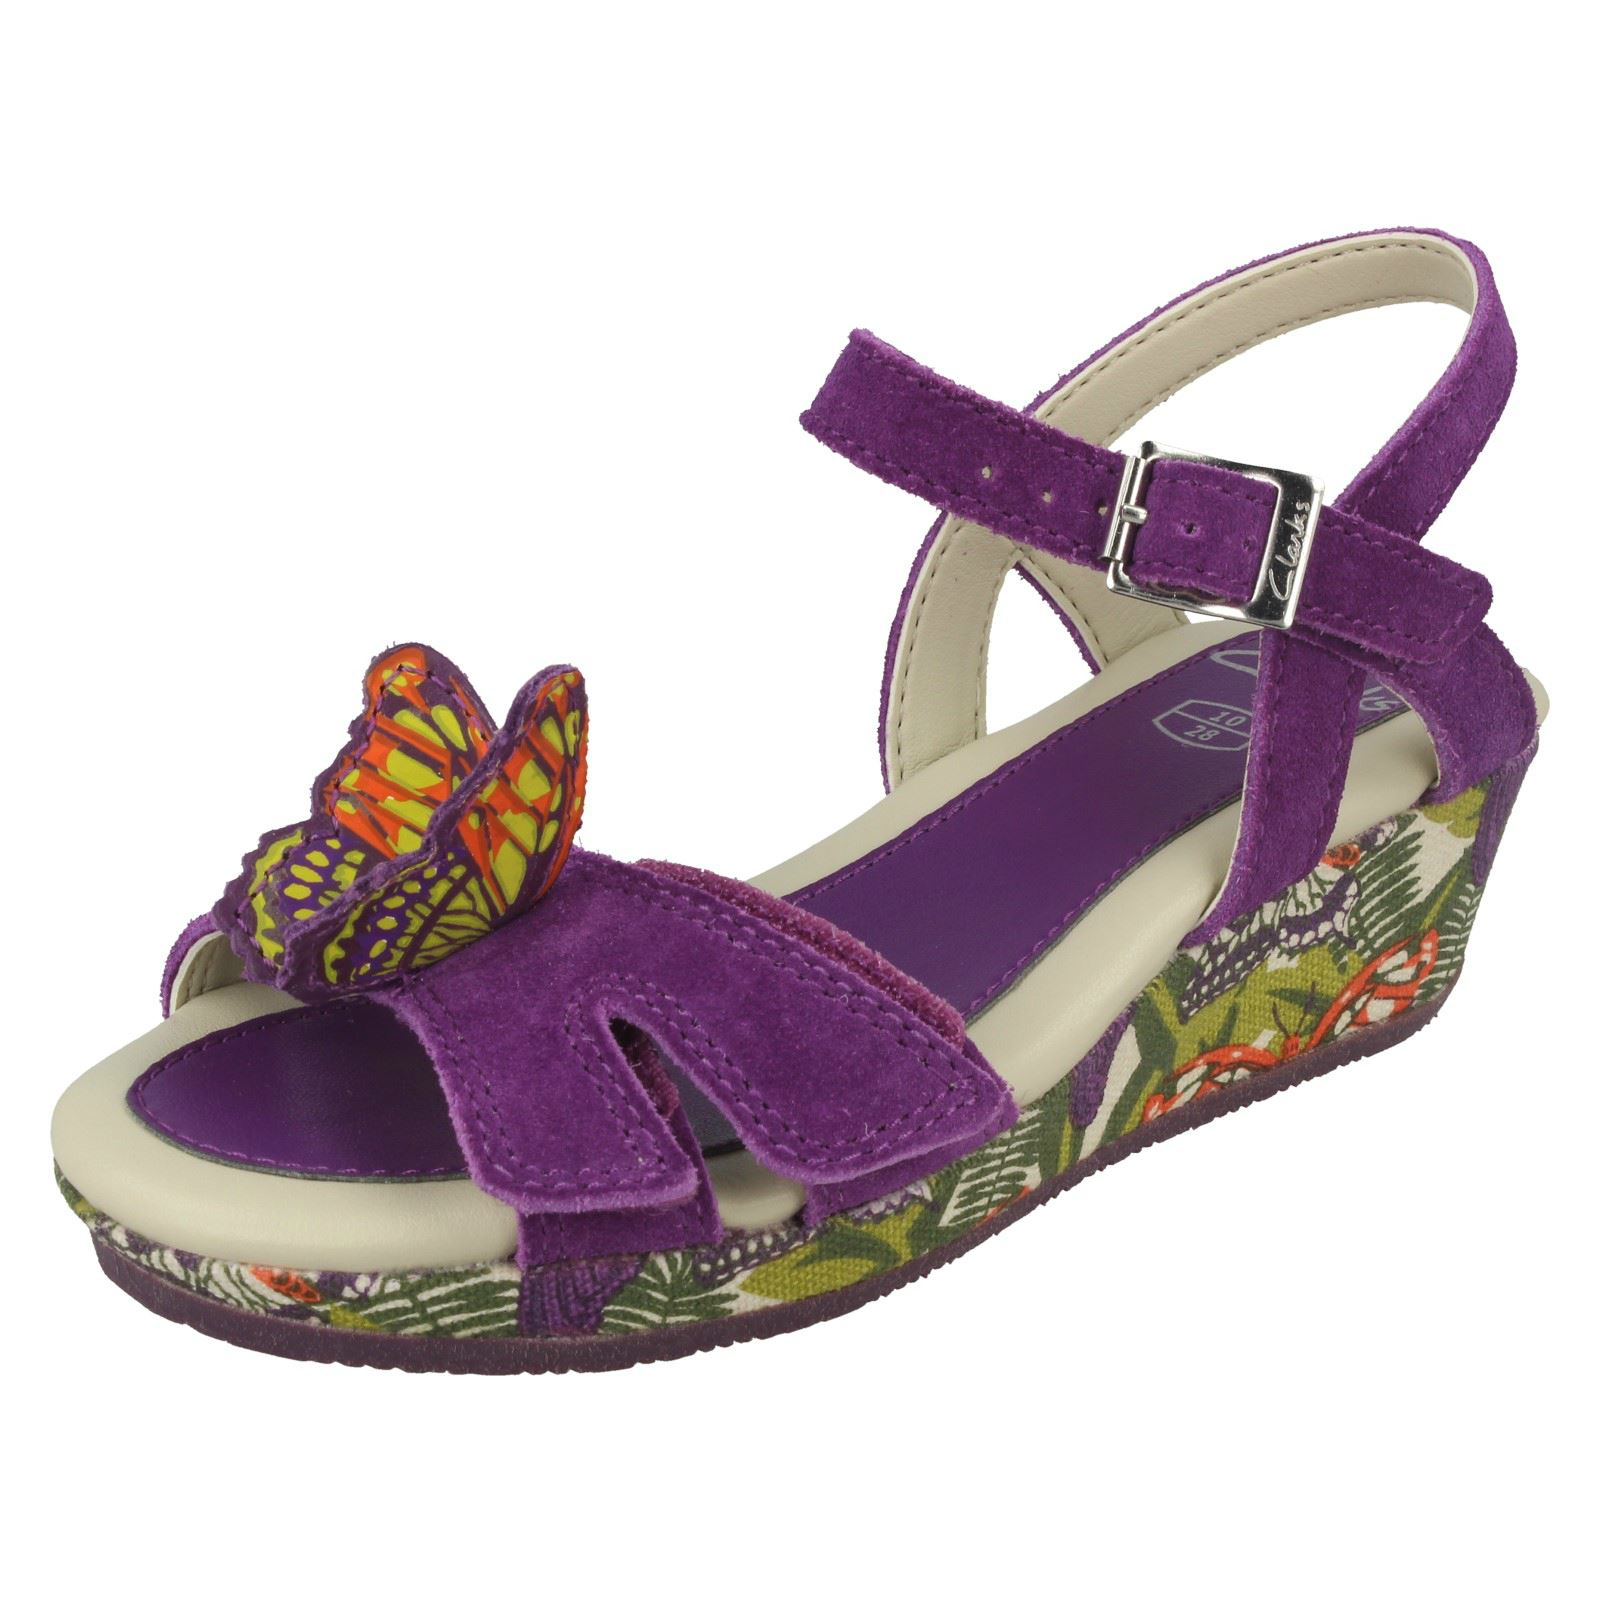 Clarks Girls Harpy Fly Purple Suede Leather Smart Wedge Butterfly Sandals